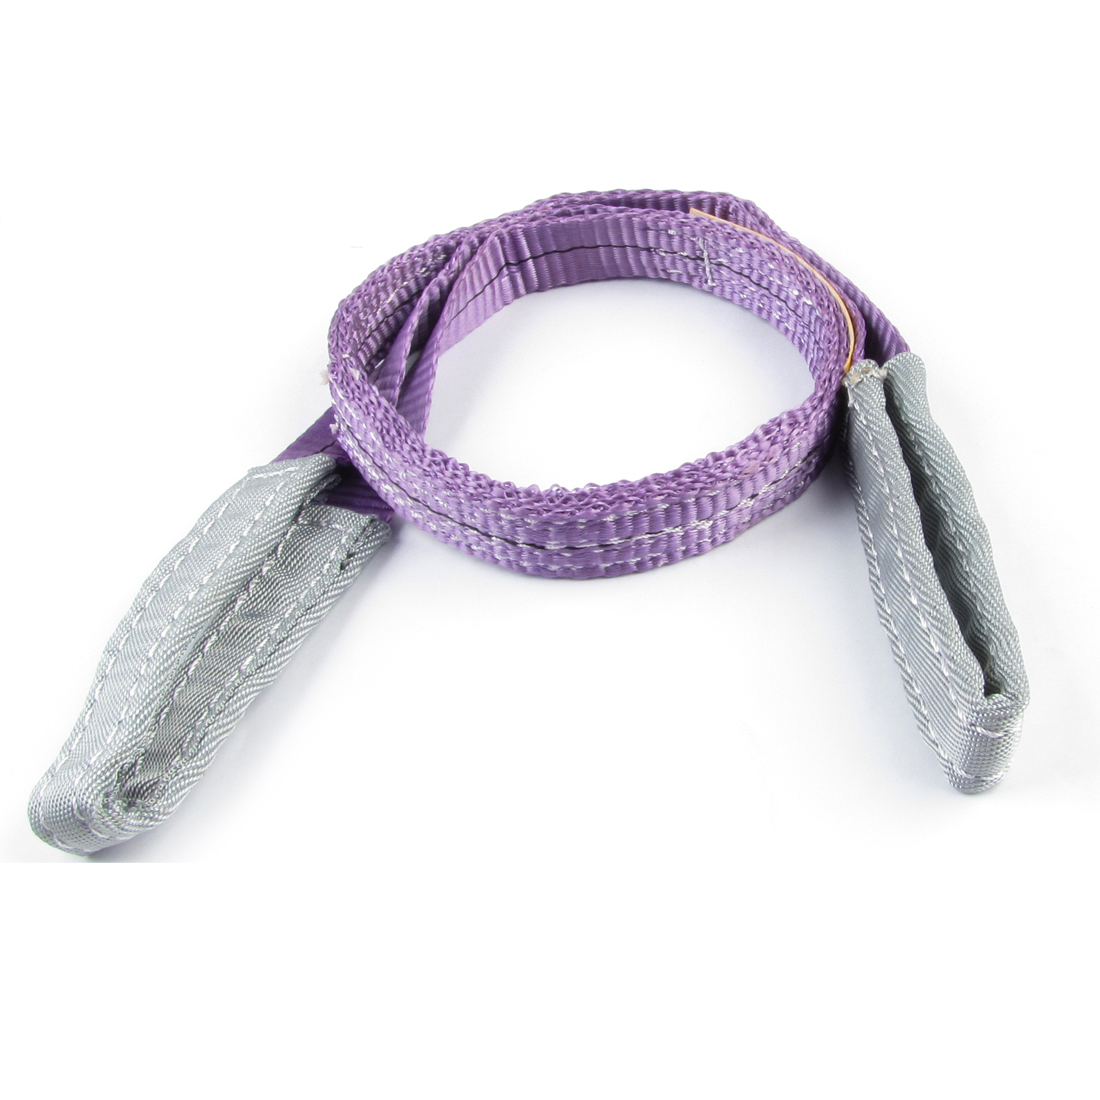 25mm Width 1M 1T Flat Eye to Eye Web Lifting Tow Strap Purple